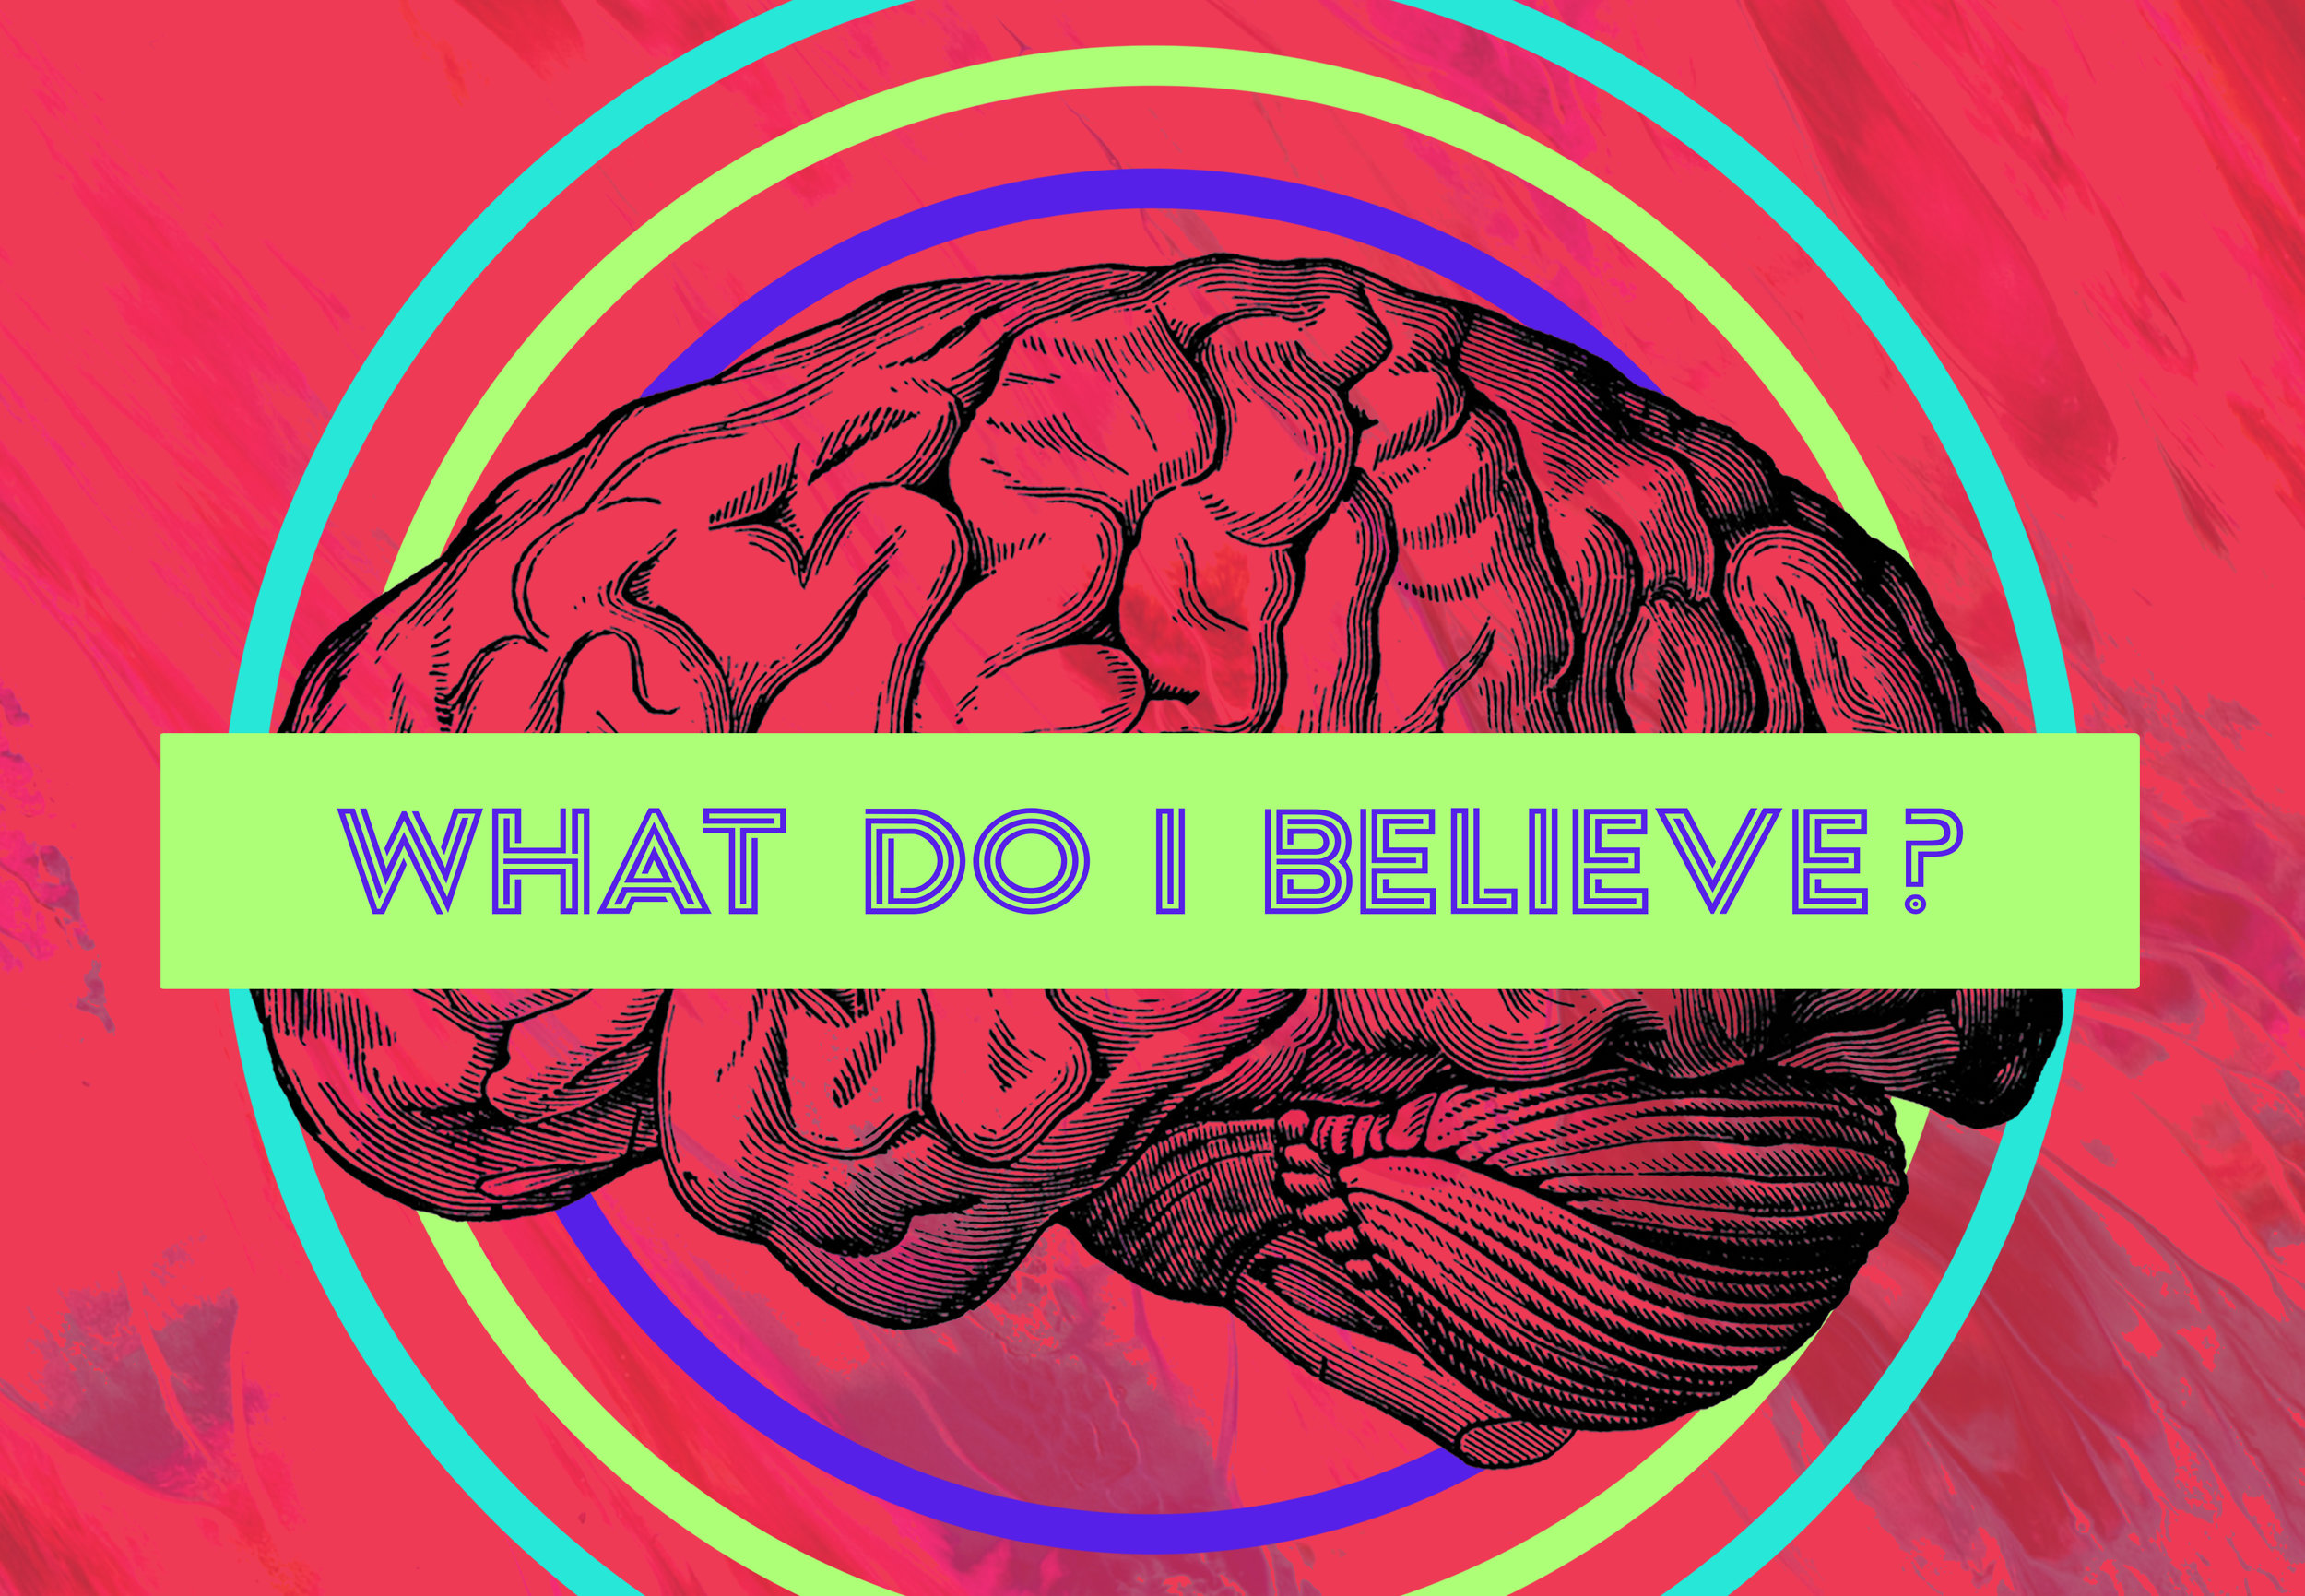 What Do You Believe.jpg